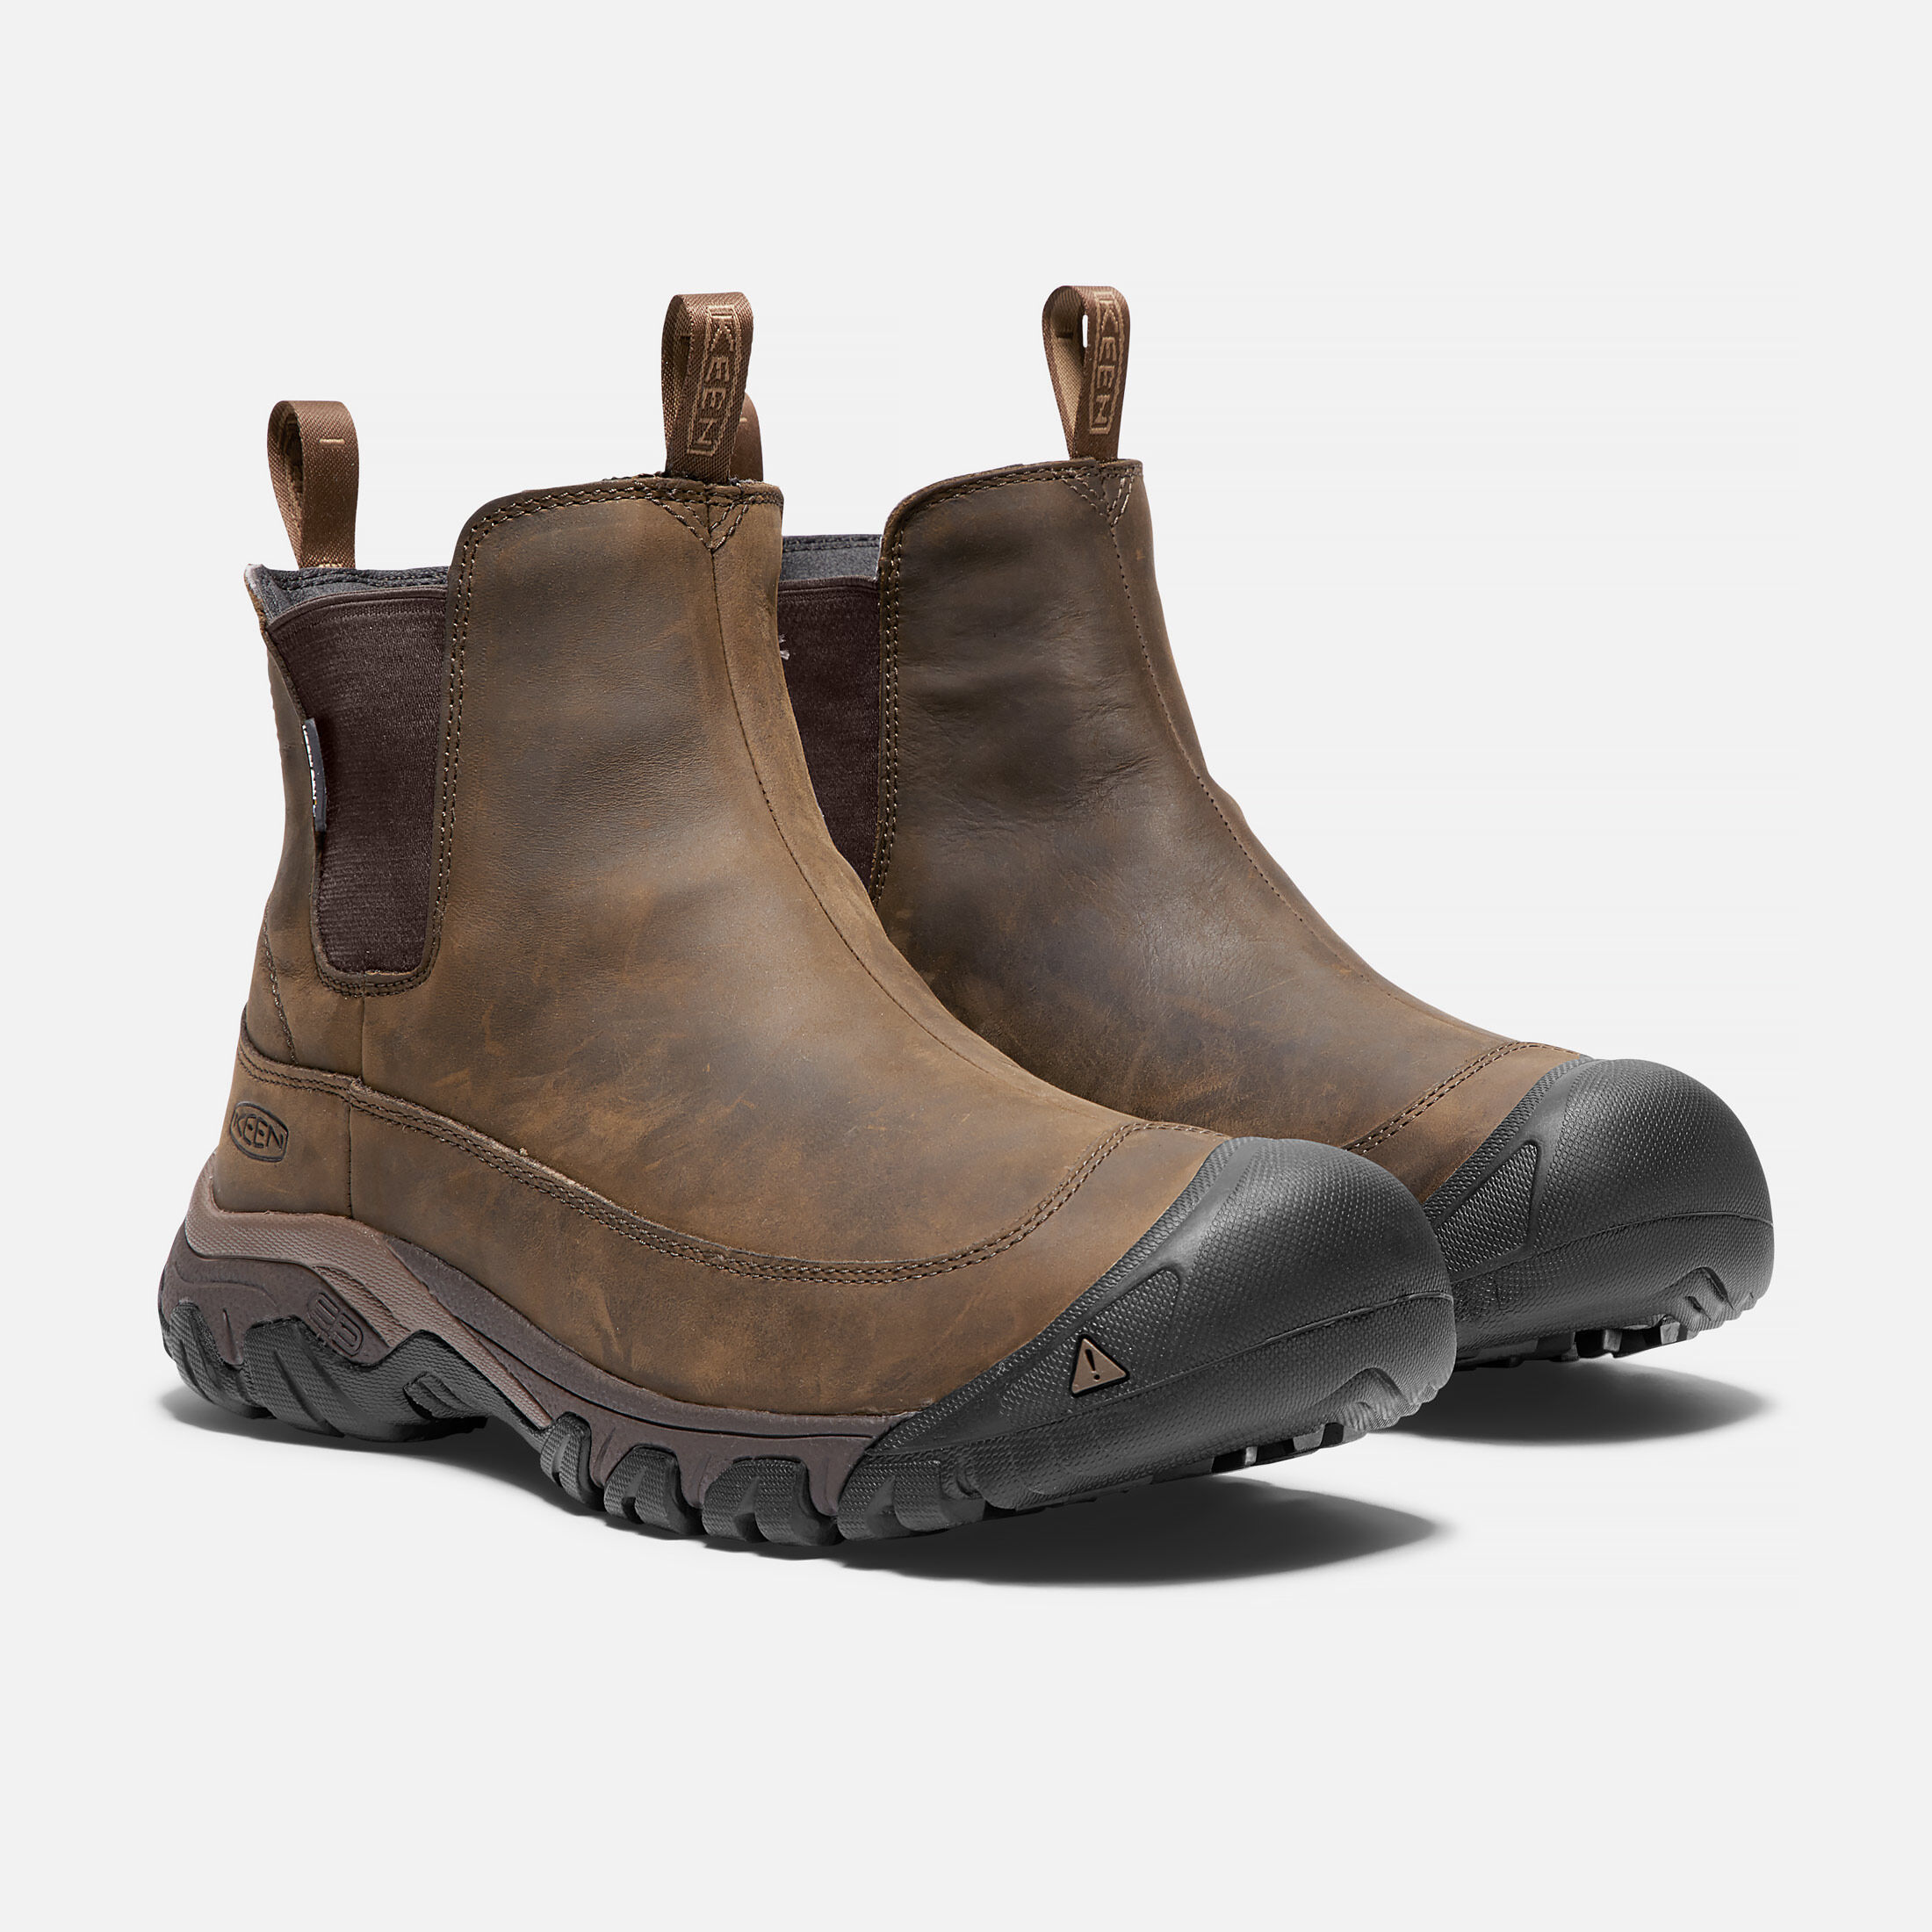 Anchorage III Pull-On Waterproof Boots